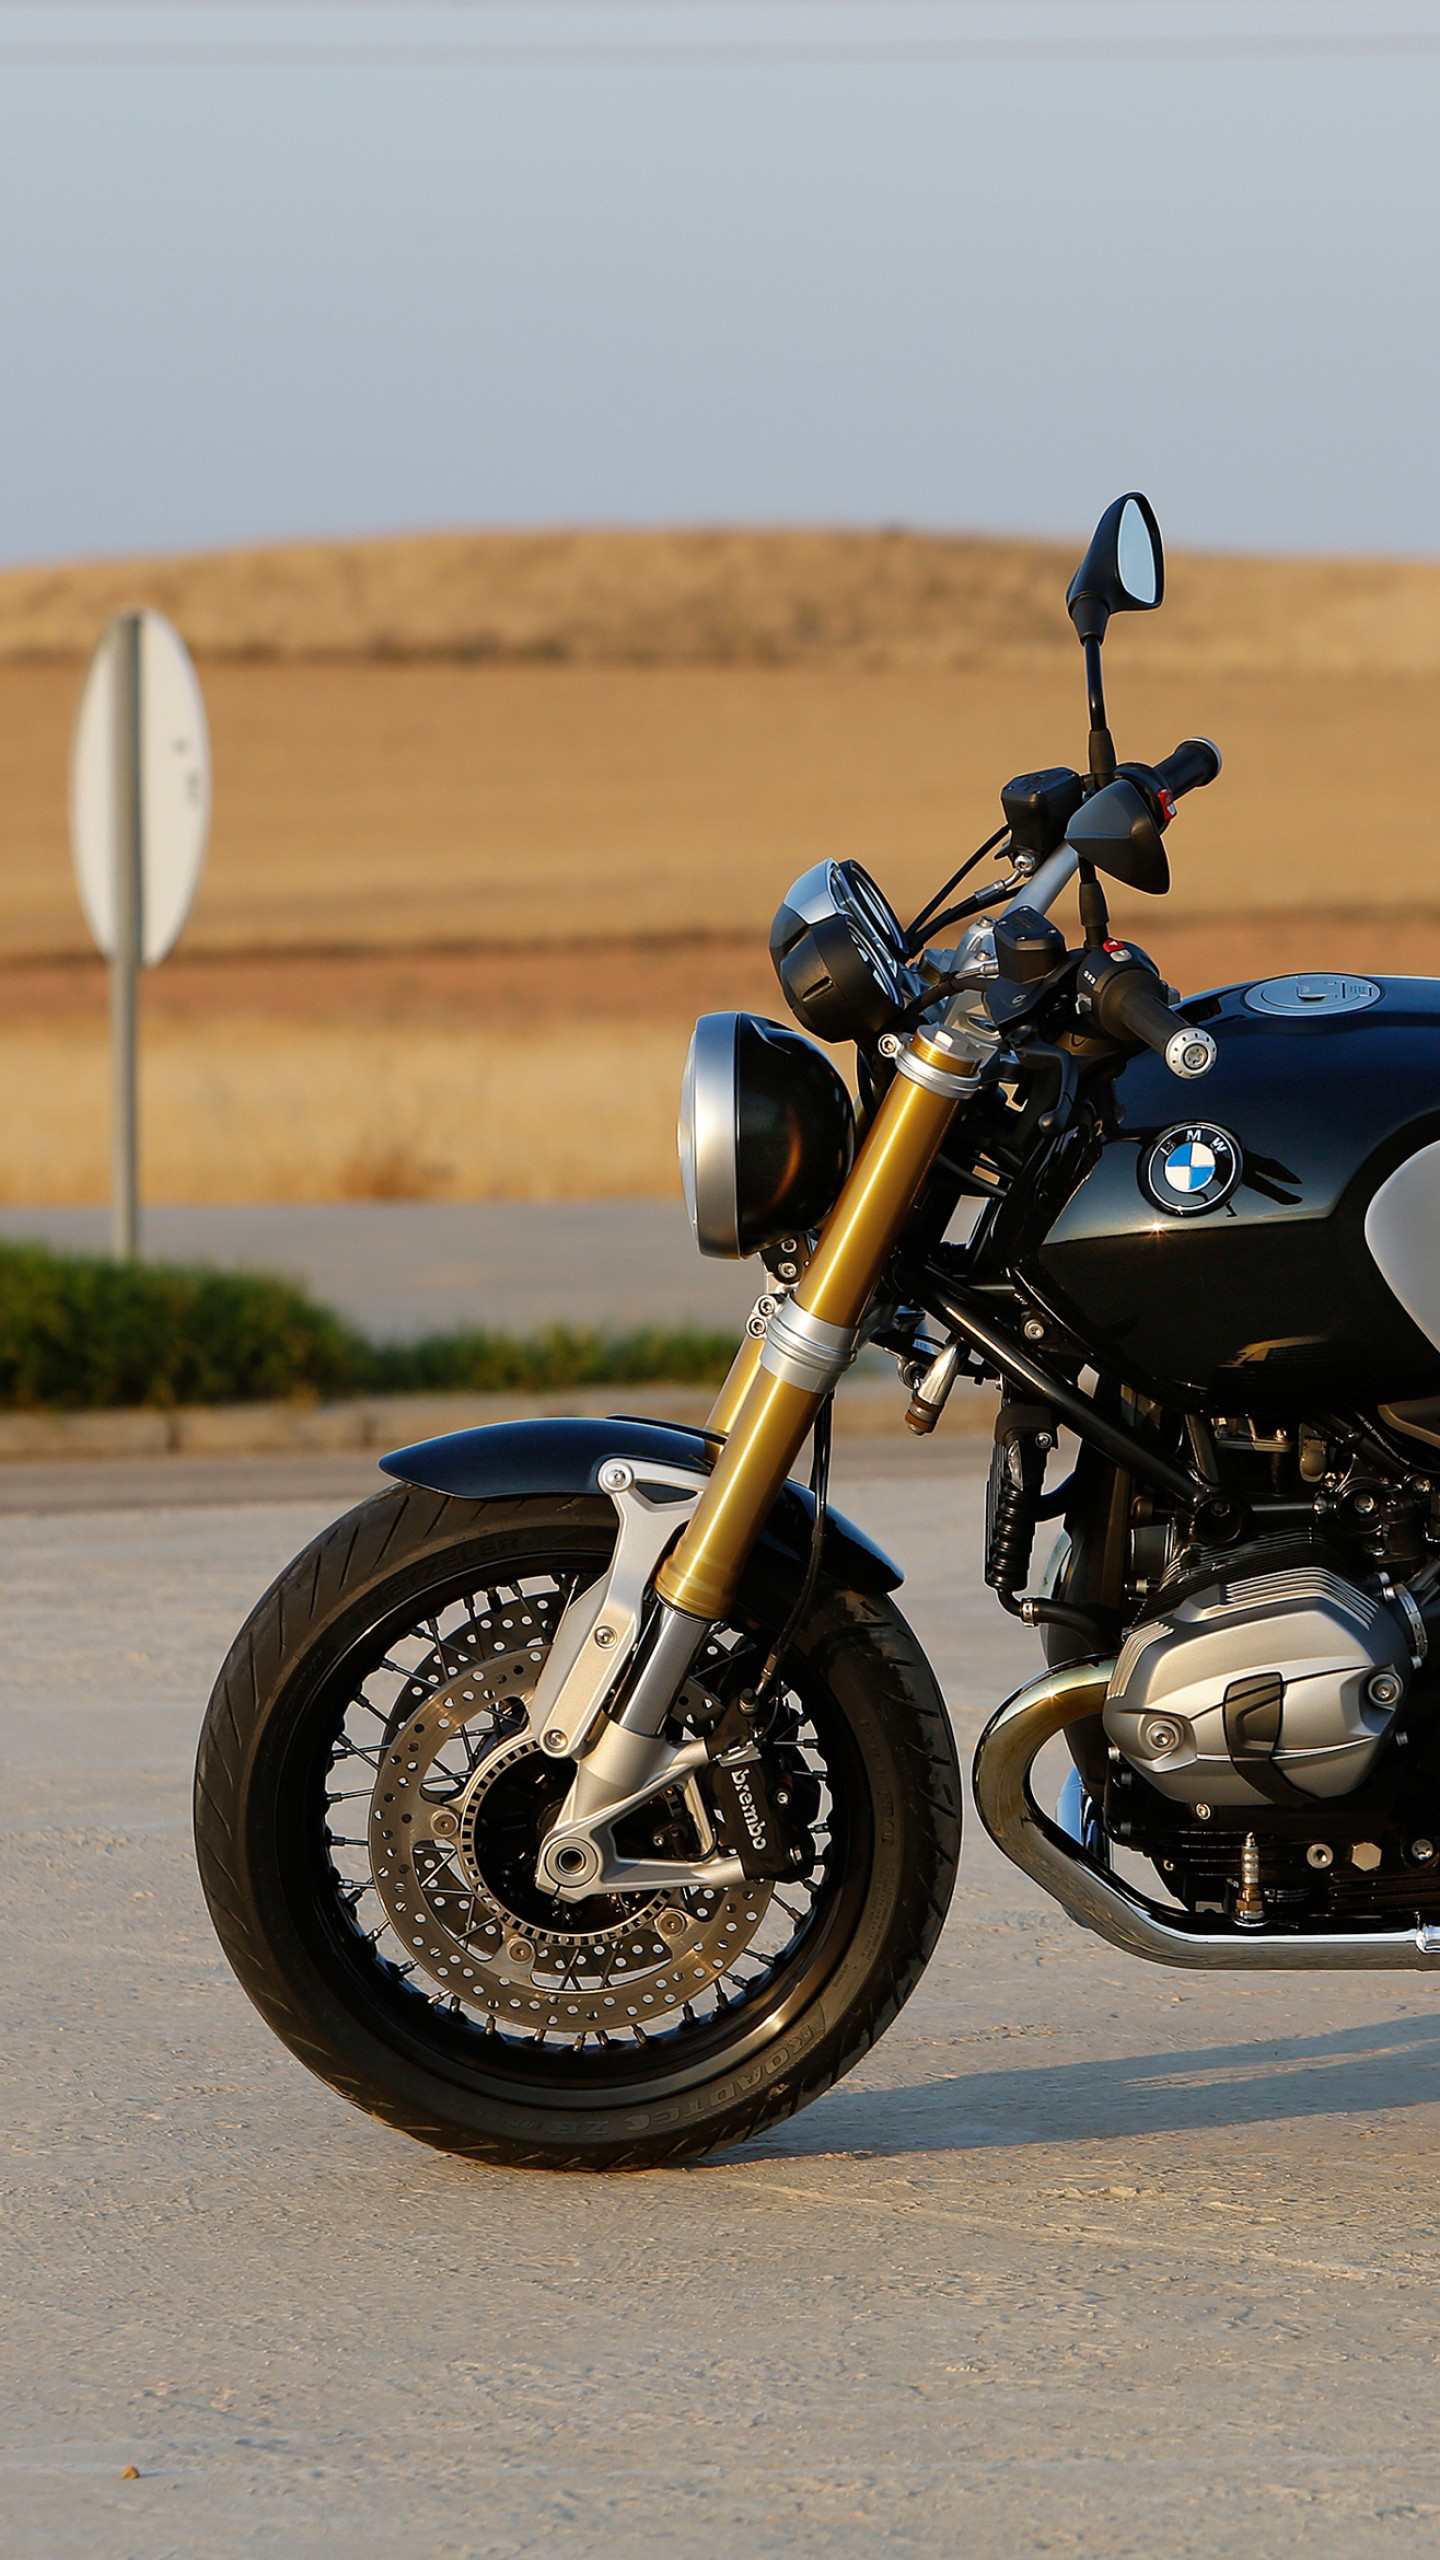 Wallpaper Bmw R Ninet Motorcycle 2015 Bike Review Test Drive Speed Buy Rent Side Road Cars Bikes 2974 Page 32